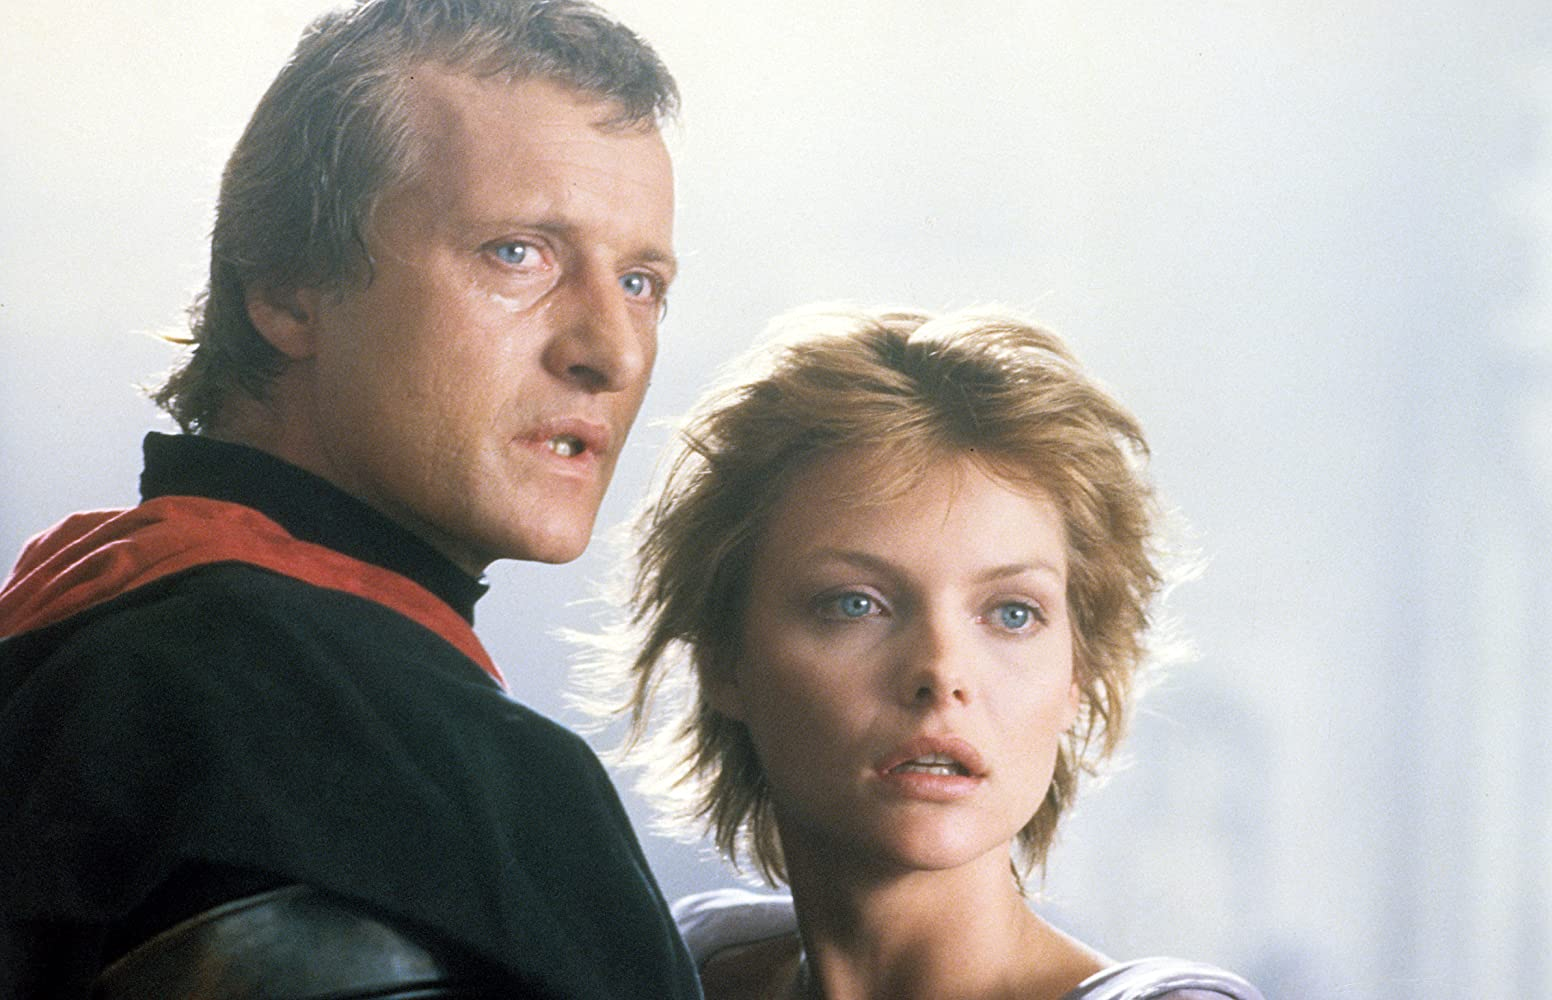 Michelle Pfeiffer and Rutger Hauer in Ladyhawke (1985)